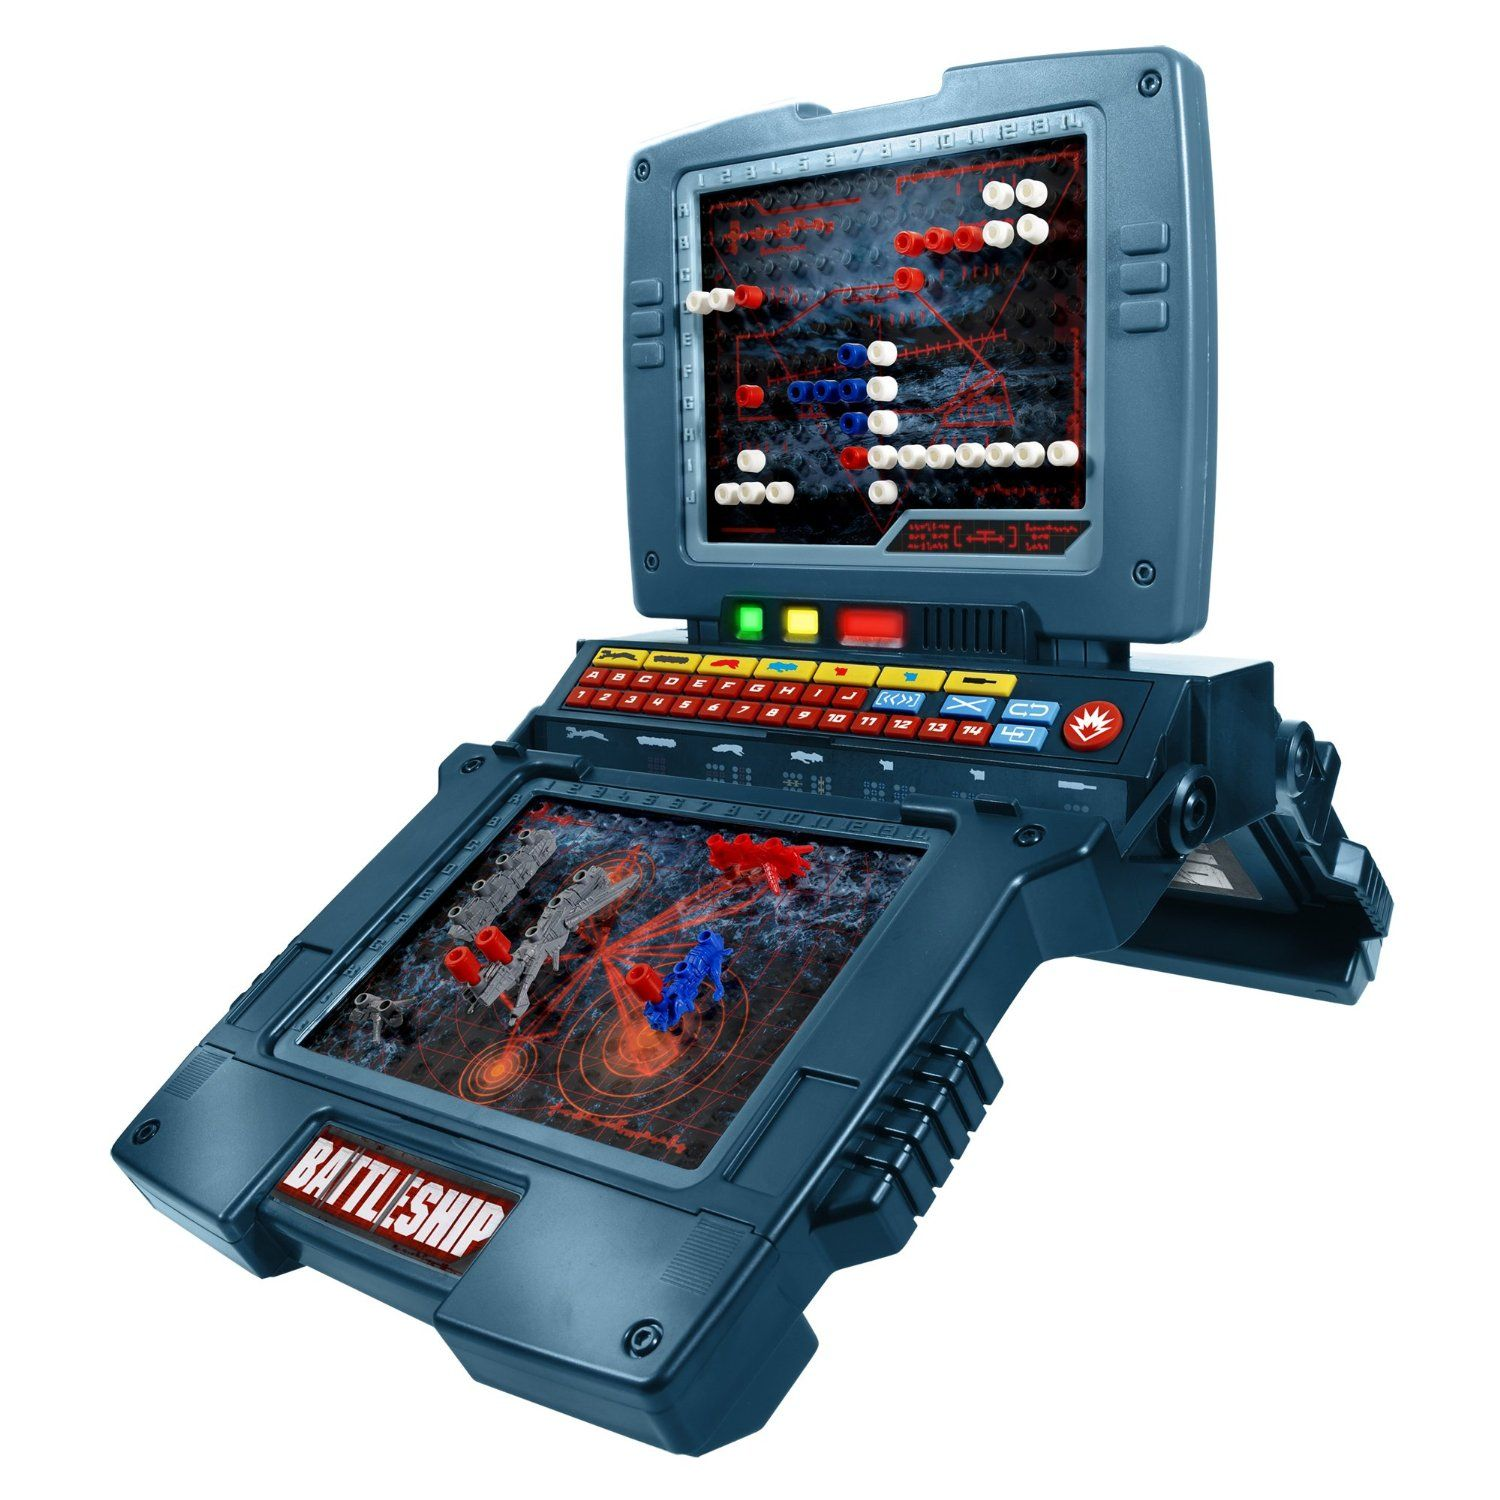 Electronic Toys For Boys : Deluxe edition battleship best toys for boys age